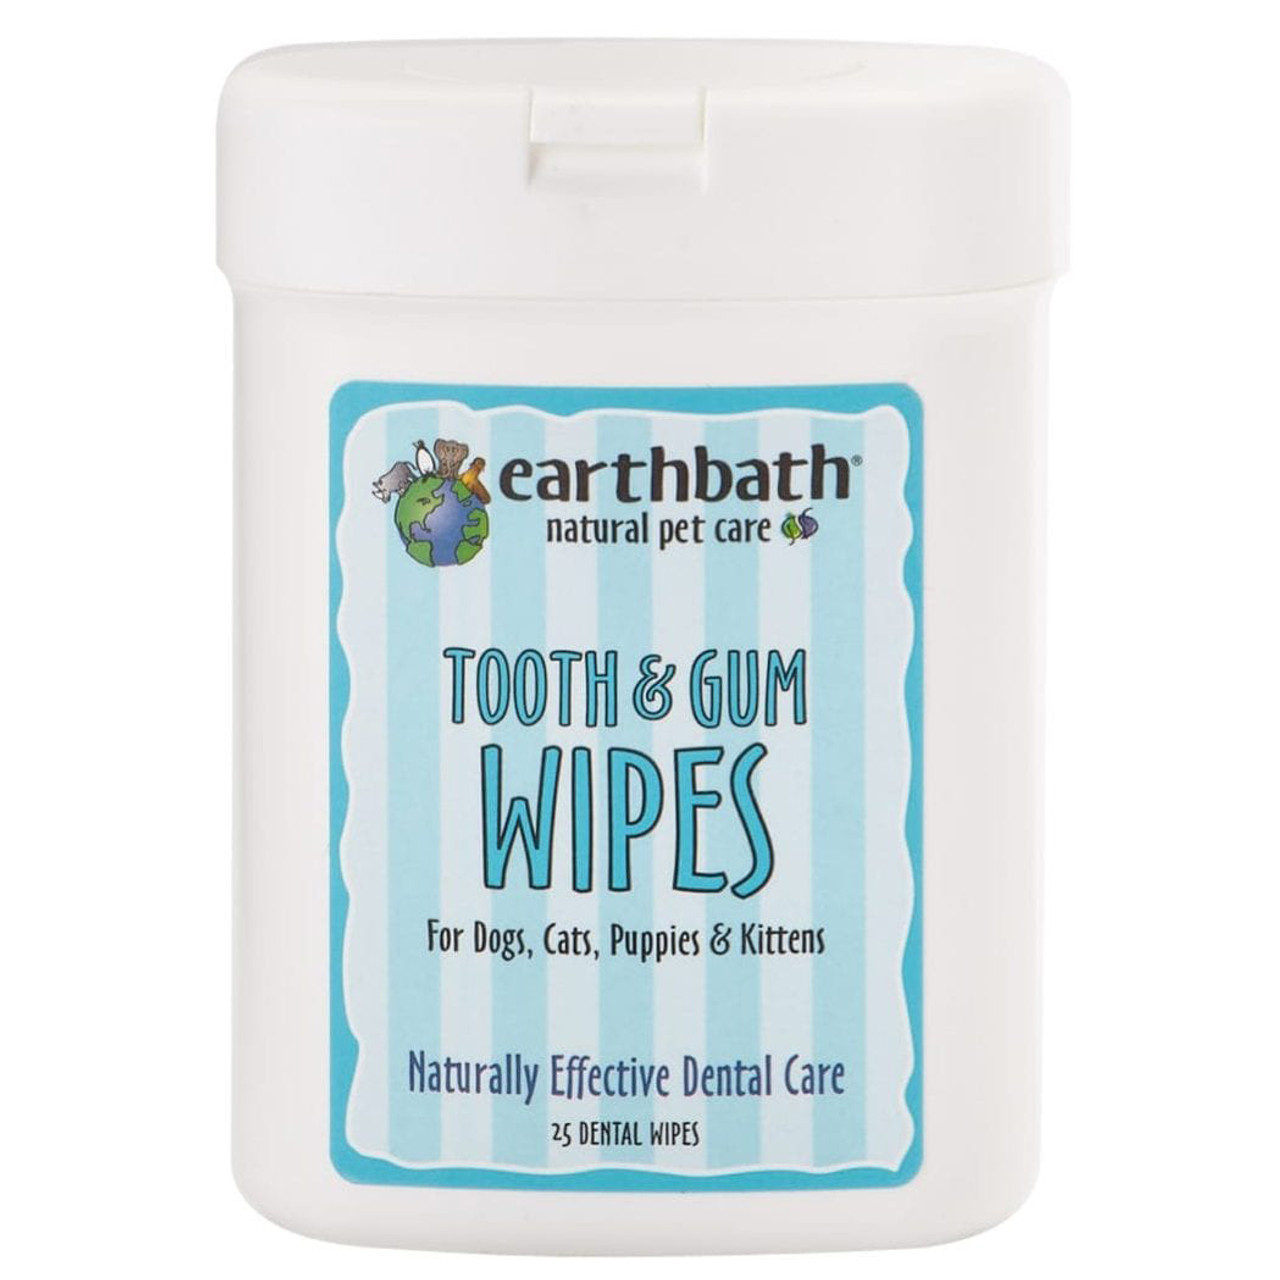 Earthbath Tooth & Gum Wipes for Dogs, Cats, Puppies, and Kittens